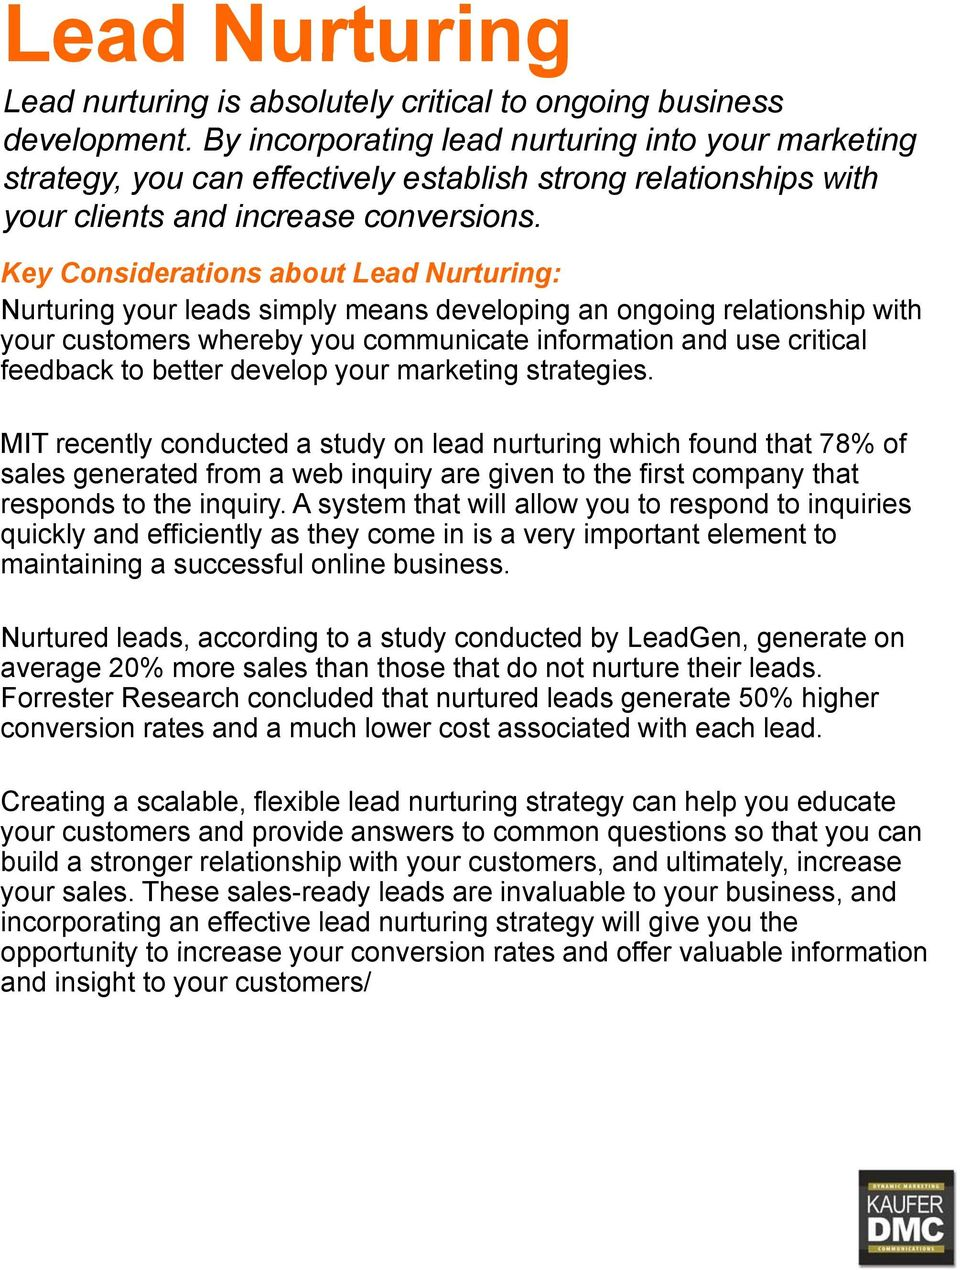 Key Considerations about Lead Nurturing: Nurturing your leads simply means developing an ongoing relationship with your customers whereby you communicate information and use critical feedback to